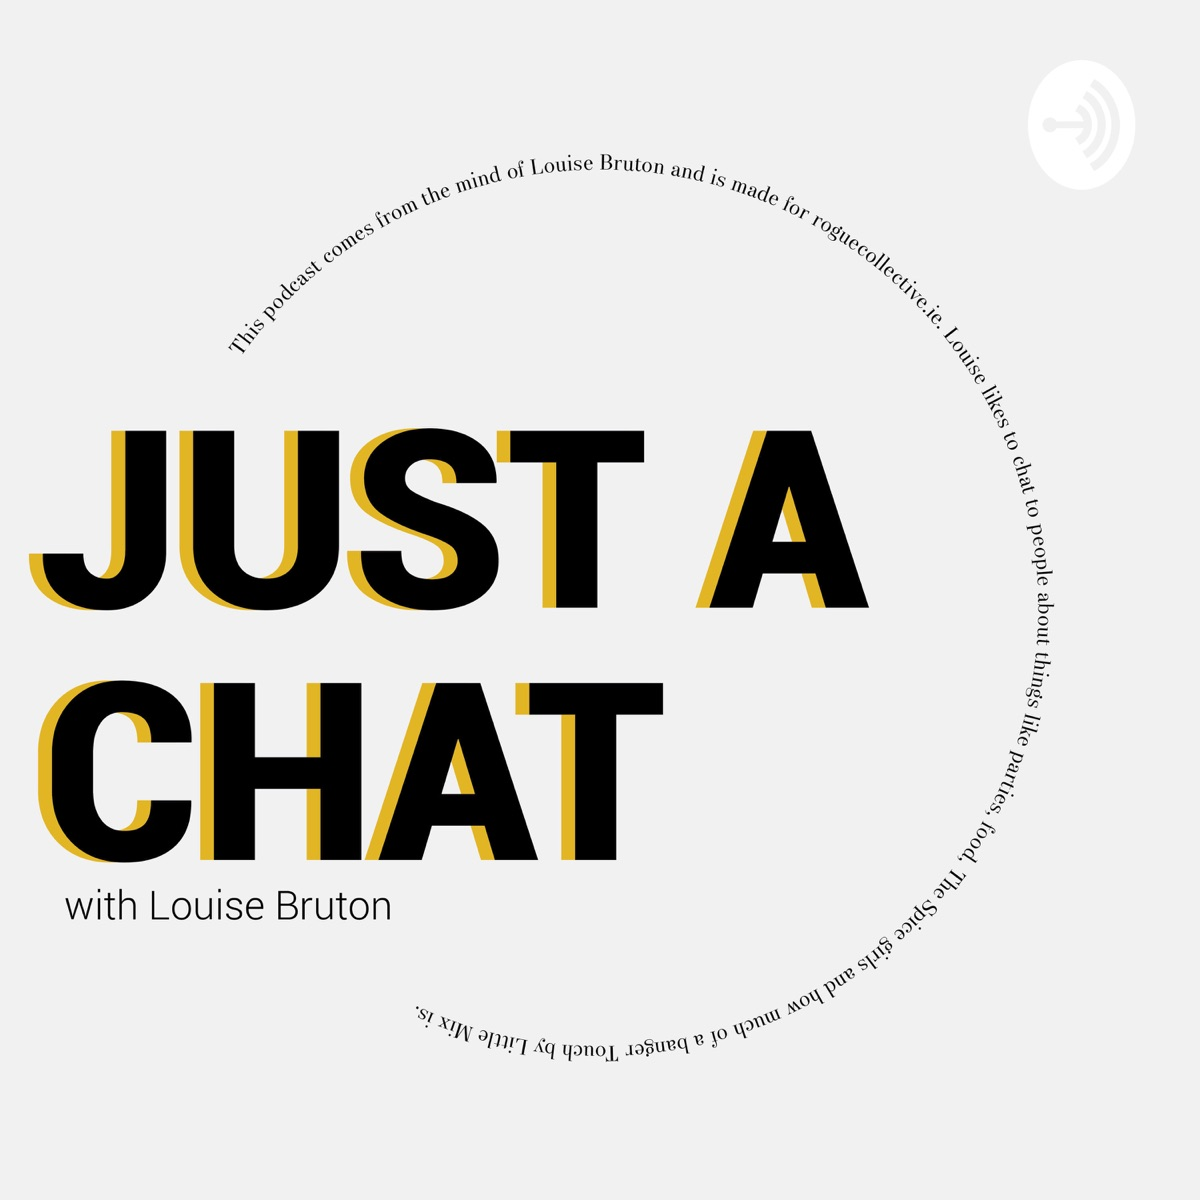 Just a chat